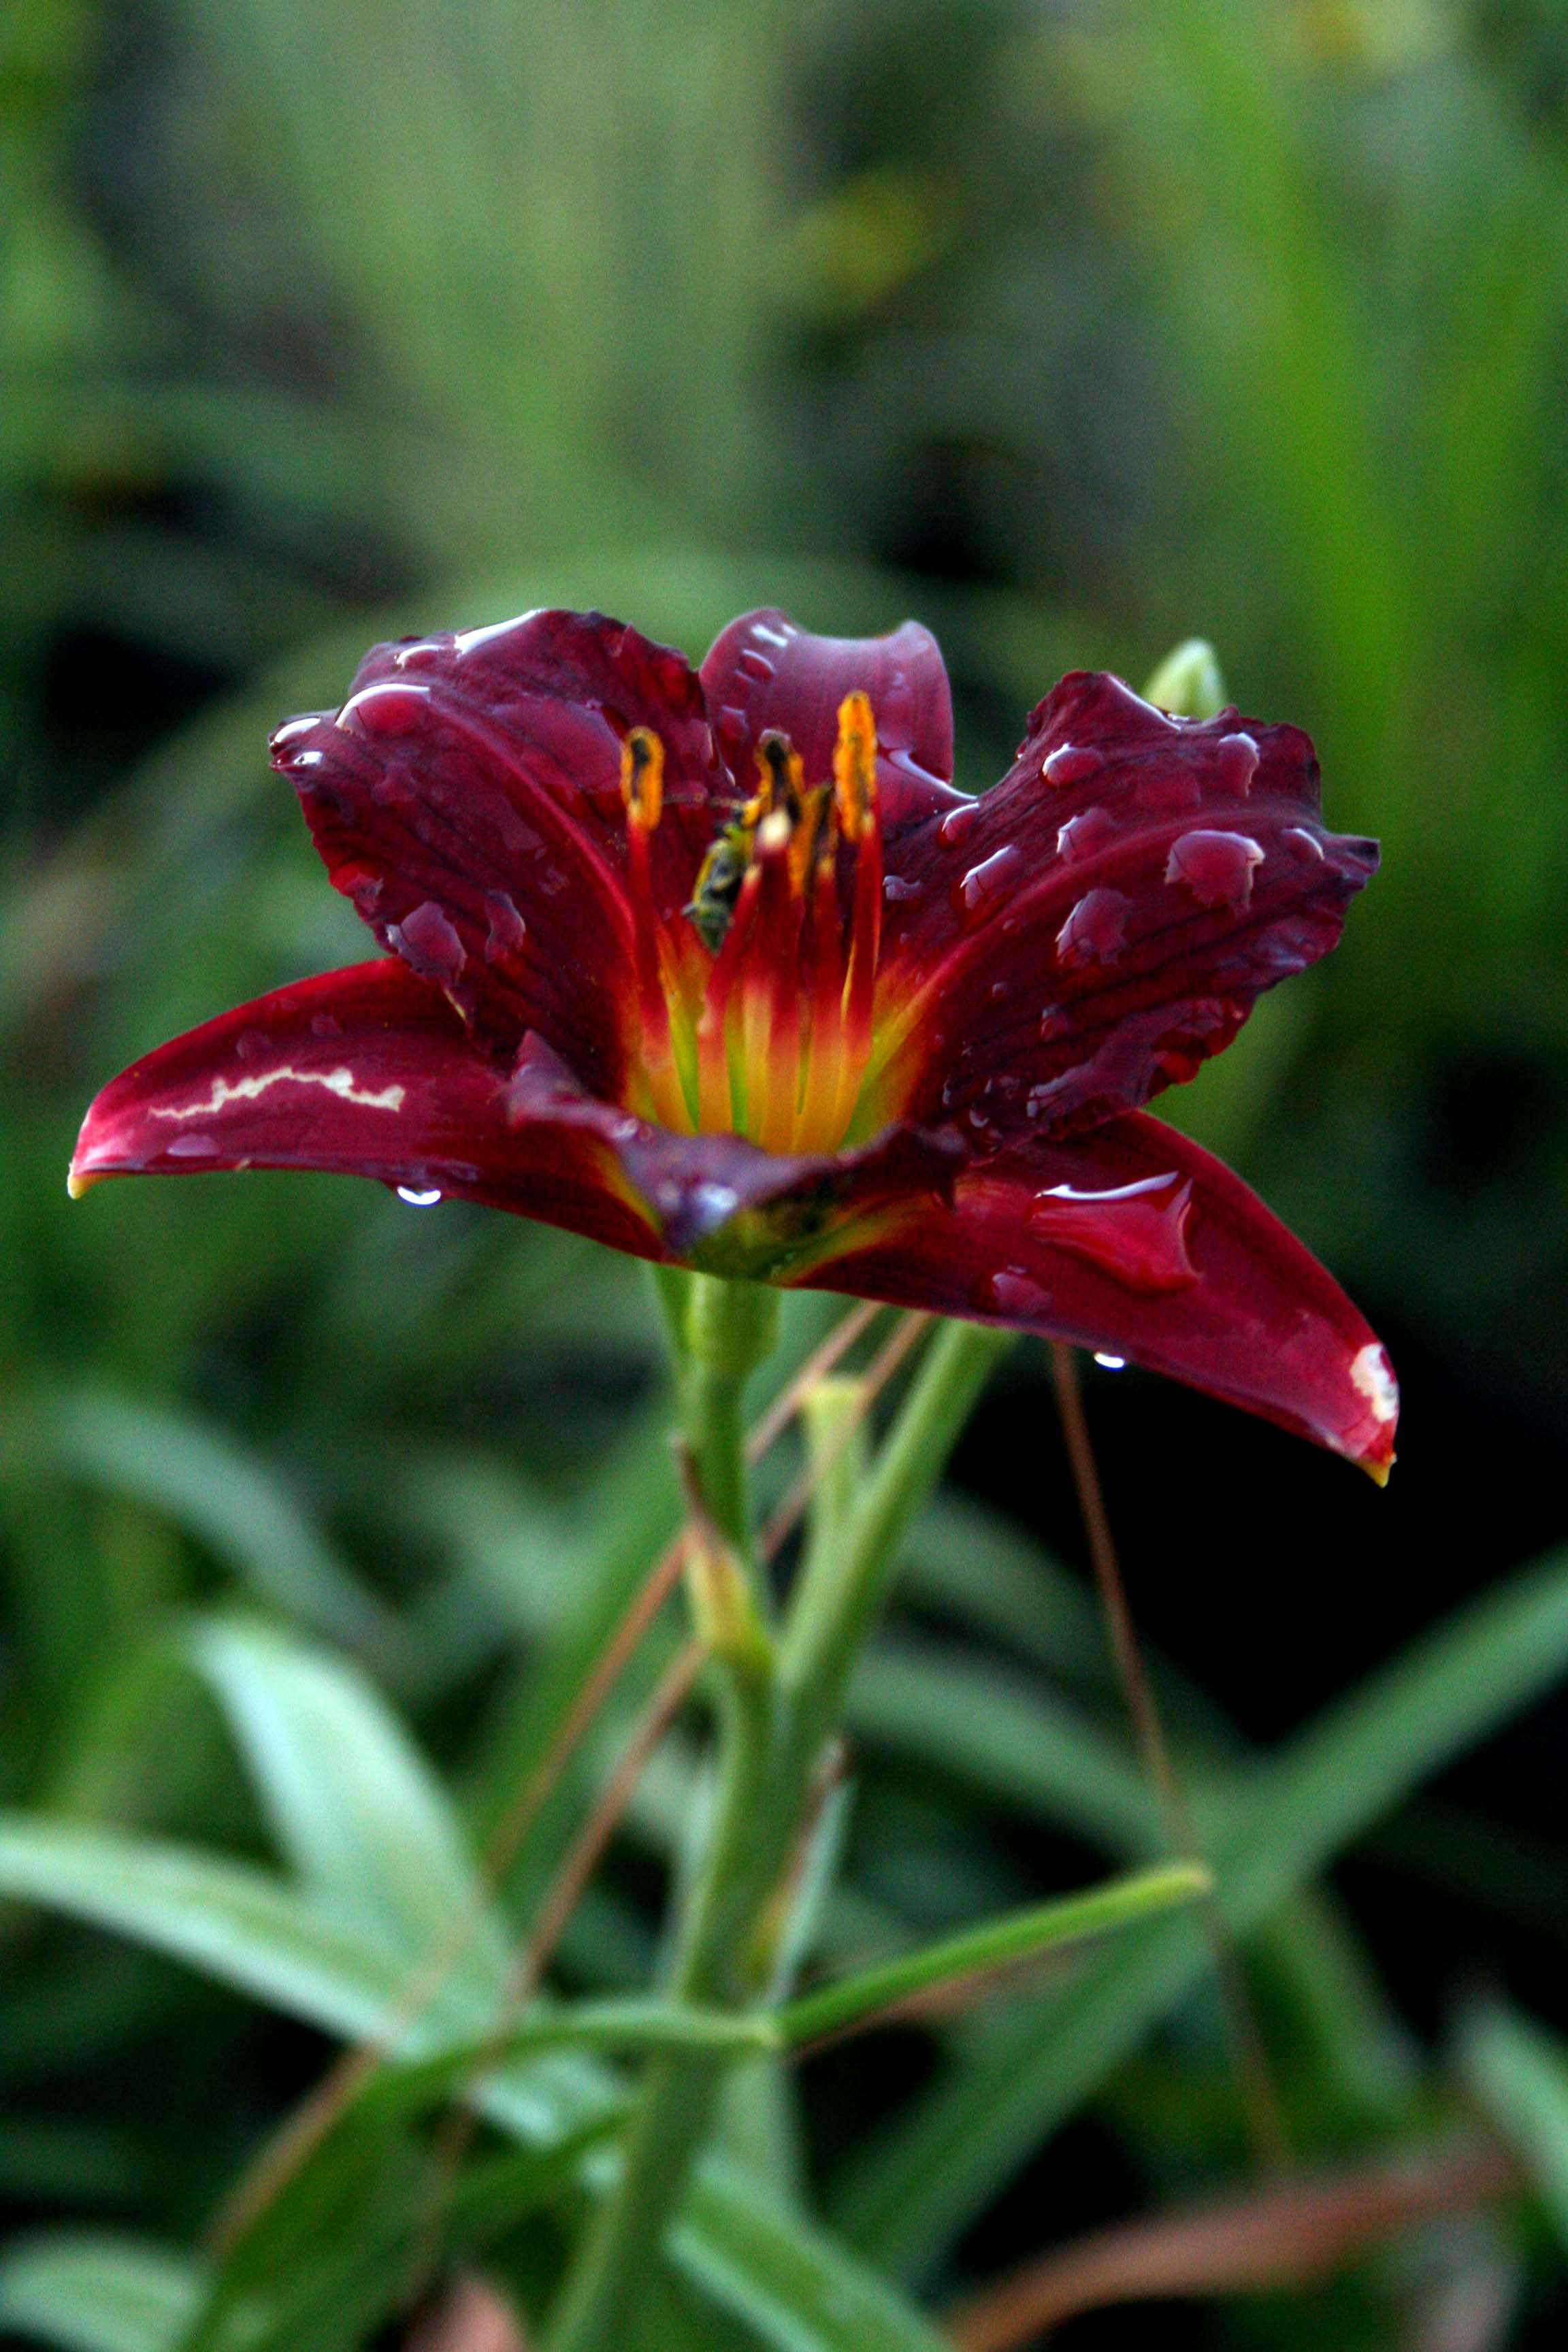 """Daylily (Hemerocallis) . With hundreds of cultivars there are too many colors to list. Daylilies range from 10-36"""" tall and 12-24"""" wide. Depending on the variety, blooms start in early summer and extend into late summer with a successive blooming habit that last 4-6 weeks. Plant in sun to partial shade with no more than a half day of shade. They are drought tolerant, pest resistant – an overall tough plant. With a clump type growth, they are dynamic planted in a mass grouping. Well drained fertile soil is best, but they are very adaptive to a wide range of soils. Leave dormant foliage until new foliage emerges in the spring. Fertilizer in early spring and again in early summer. Clumps can be divided every 3-5 years in the fall. Remove spent flower stocks to encourage more blooms. The most common yellow daylily is 'Stella de' Oro'. 'Pardon Me' is a great red daylily. Planting daylilies behind liriope (monkey grass) will help cover up the unattractive foliage as it begins to fade in late summer. Our daylilies started putting on their early summer show this week"""